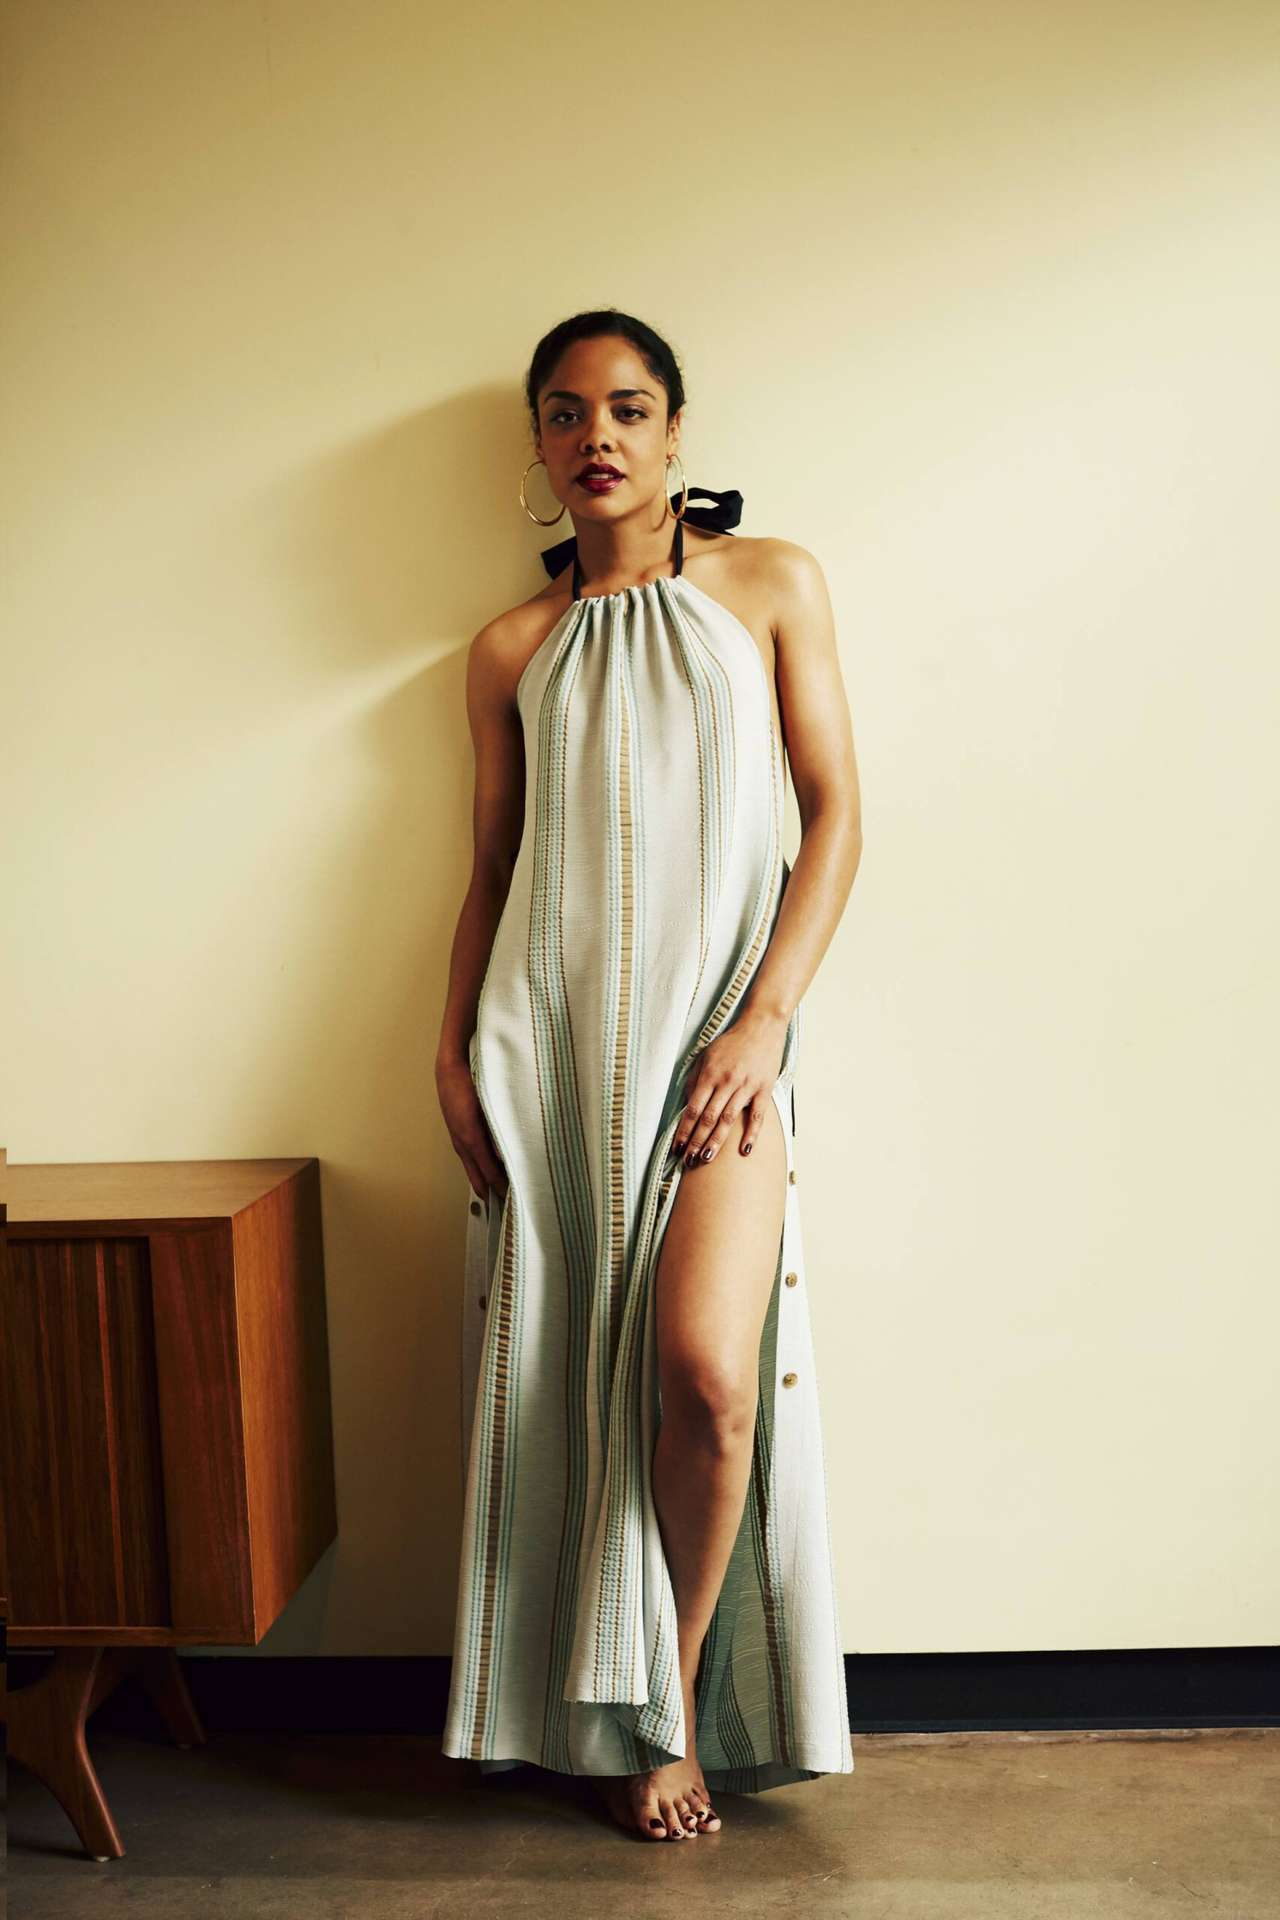 Tessa Thompson Photoshoot by by Guy Lowndes for Vogue Magazine